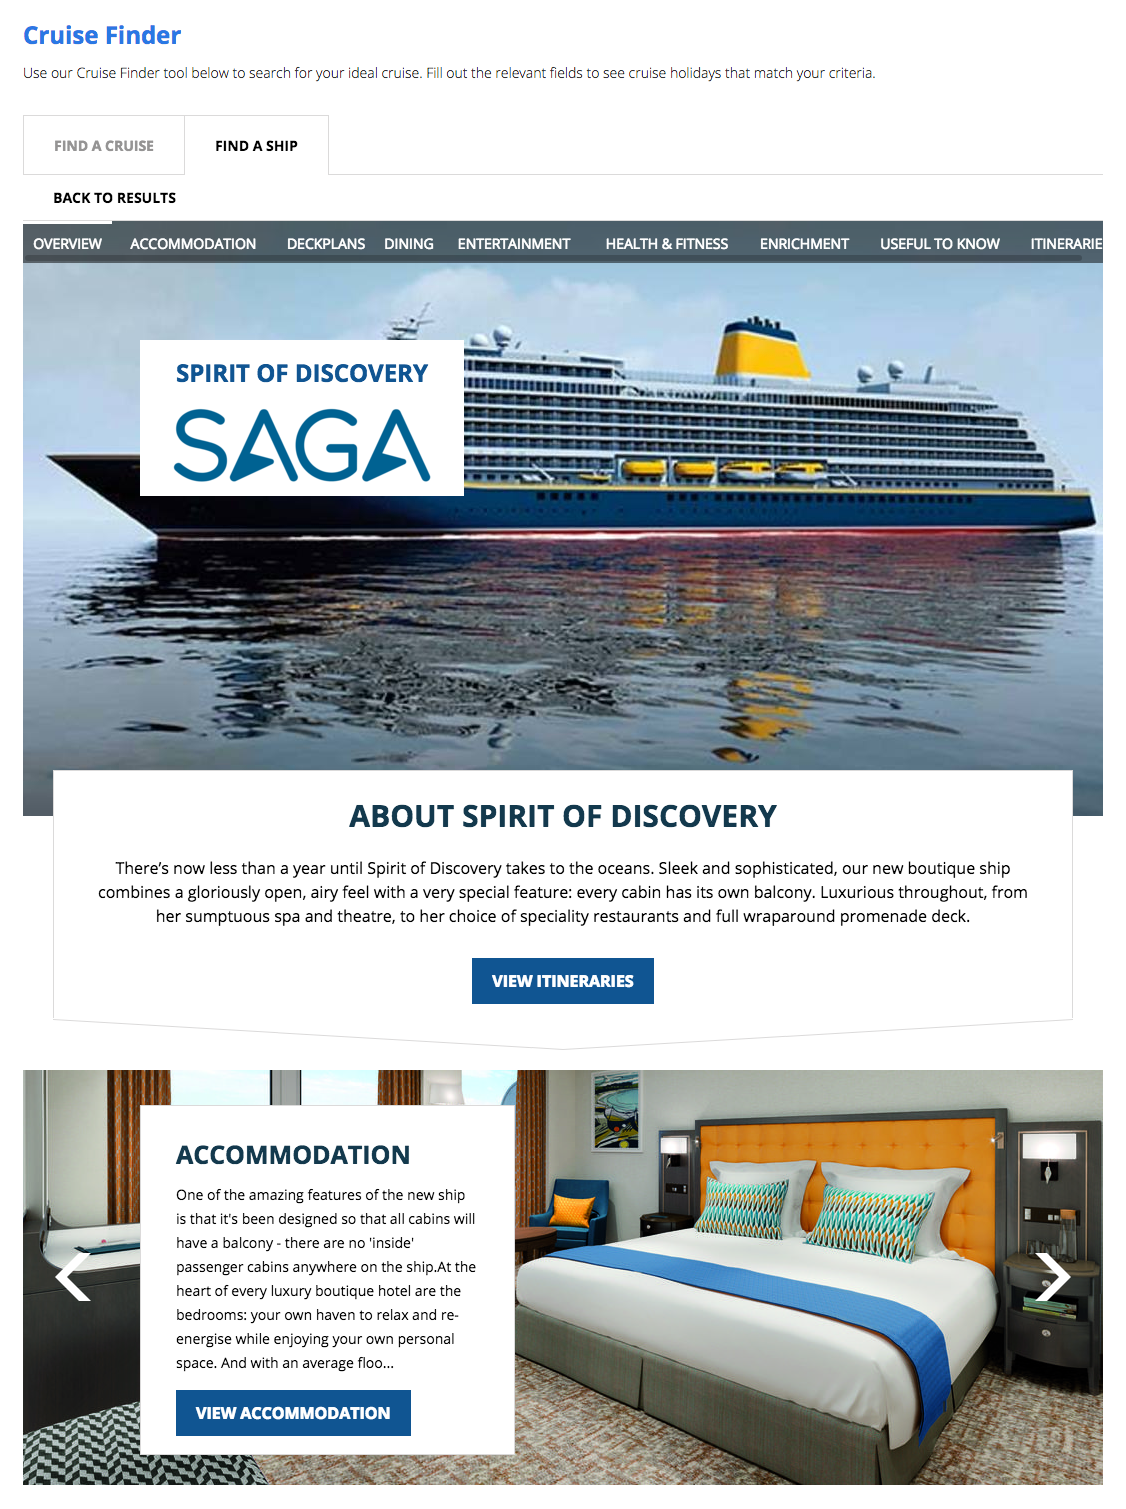 NEW Spirit of Discovery (launching 2019)